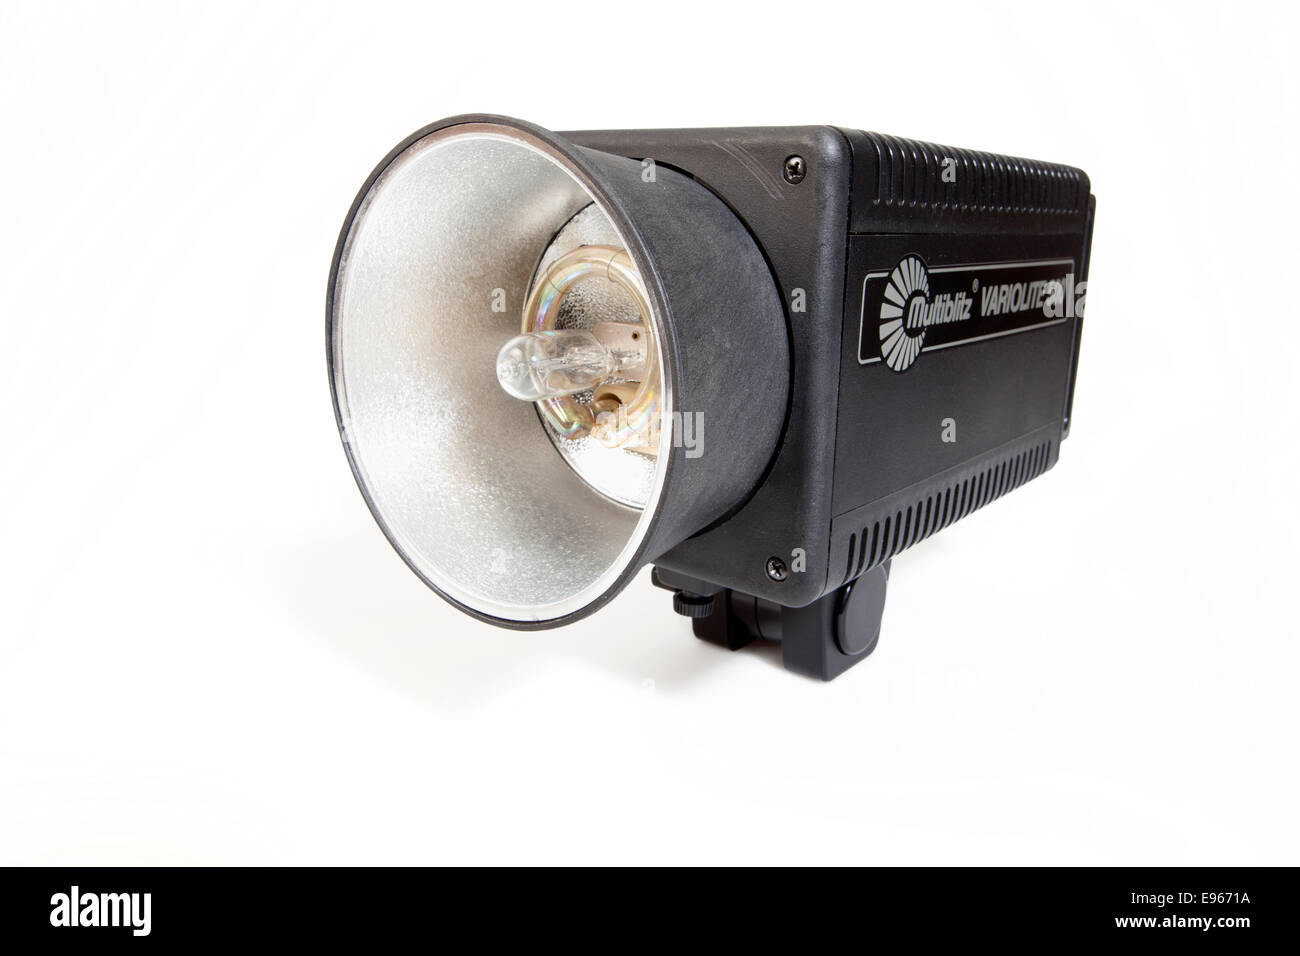 Studio flash head, - Stock Image